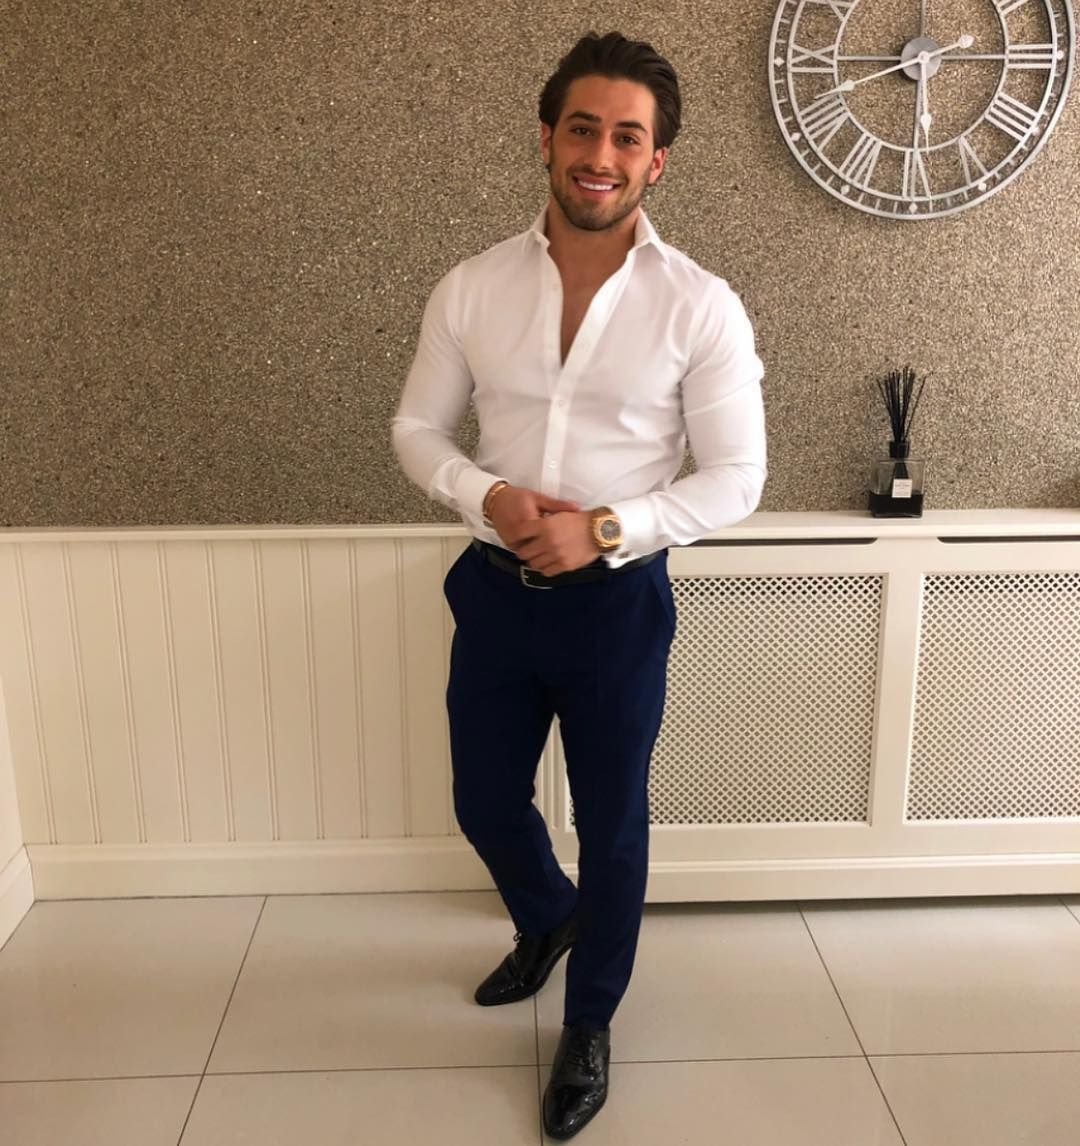 Image may contain: reality TV rich list, UK, reality TV, net worth, earnings, money, salary, rich, worth, Love Island, Kem Cetinay, Man, Shirt, Pants, Human, Person, Clothing, Footwear, Apparel, Shoe